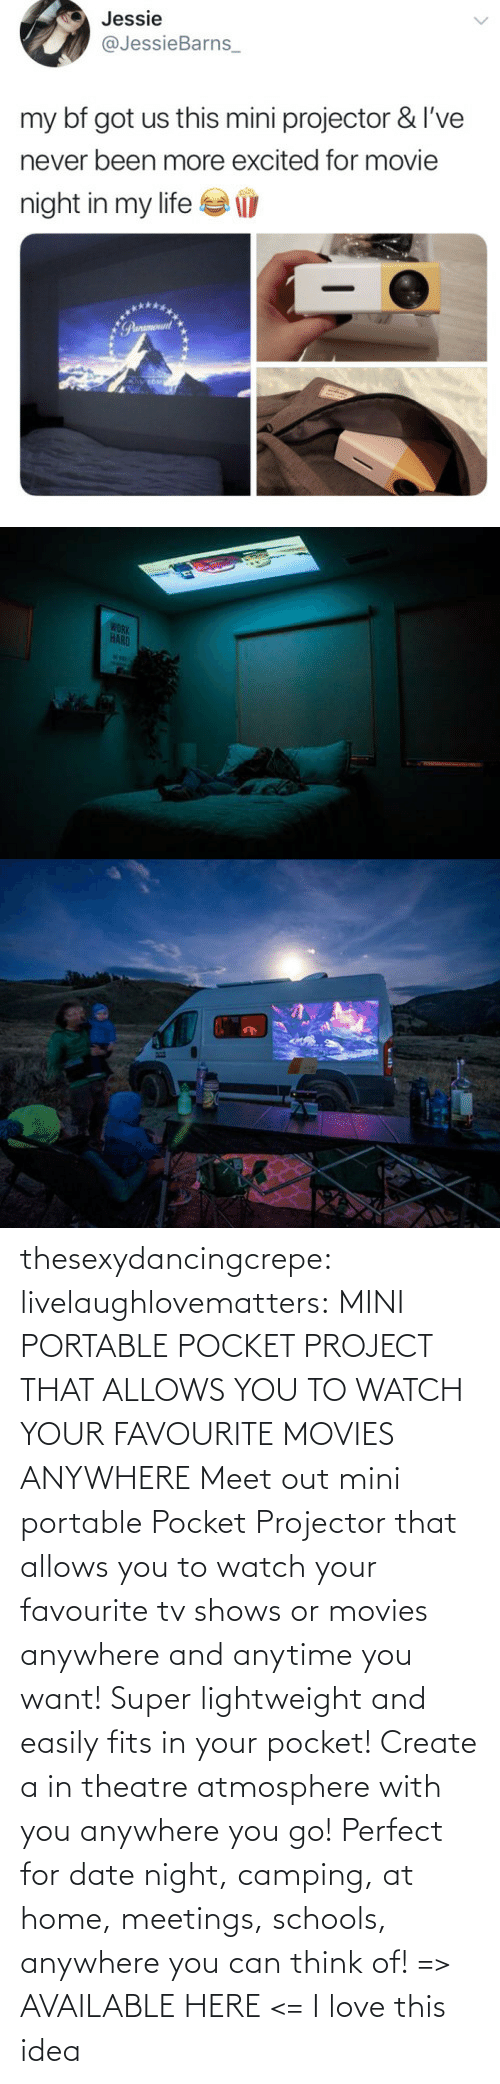 Lightweight: thesexydancingcrepe: livelaughlovematters:   MINI PORTABLE POCKET PROJECT THAT ALLOWS YOU TO WATCH YOUR FAVOURITE MOVIES ANYWHERE Meet out mini portable Pocket Projector that allows you to watch your favourite tv shows or movies anywhere and anytime you want! Super lightweight and easily fits in your pocket! Create a in theatre atmosphere with you anywhere you go! Perfect for date night, camping, at home, meetings, schools, anywhere you can think of! => AVAILABLE HERE <=    I love this idea